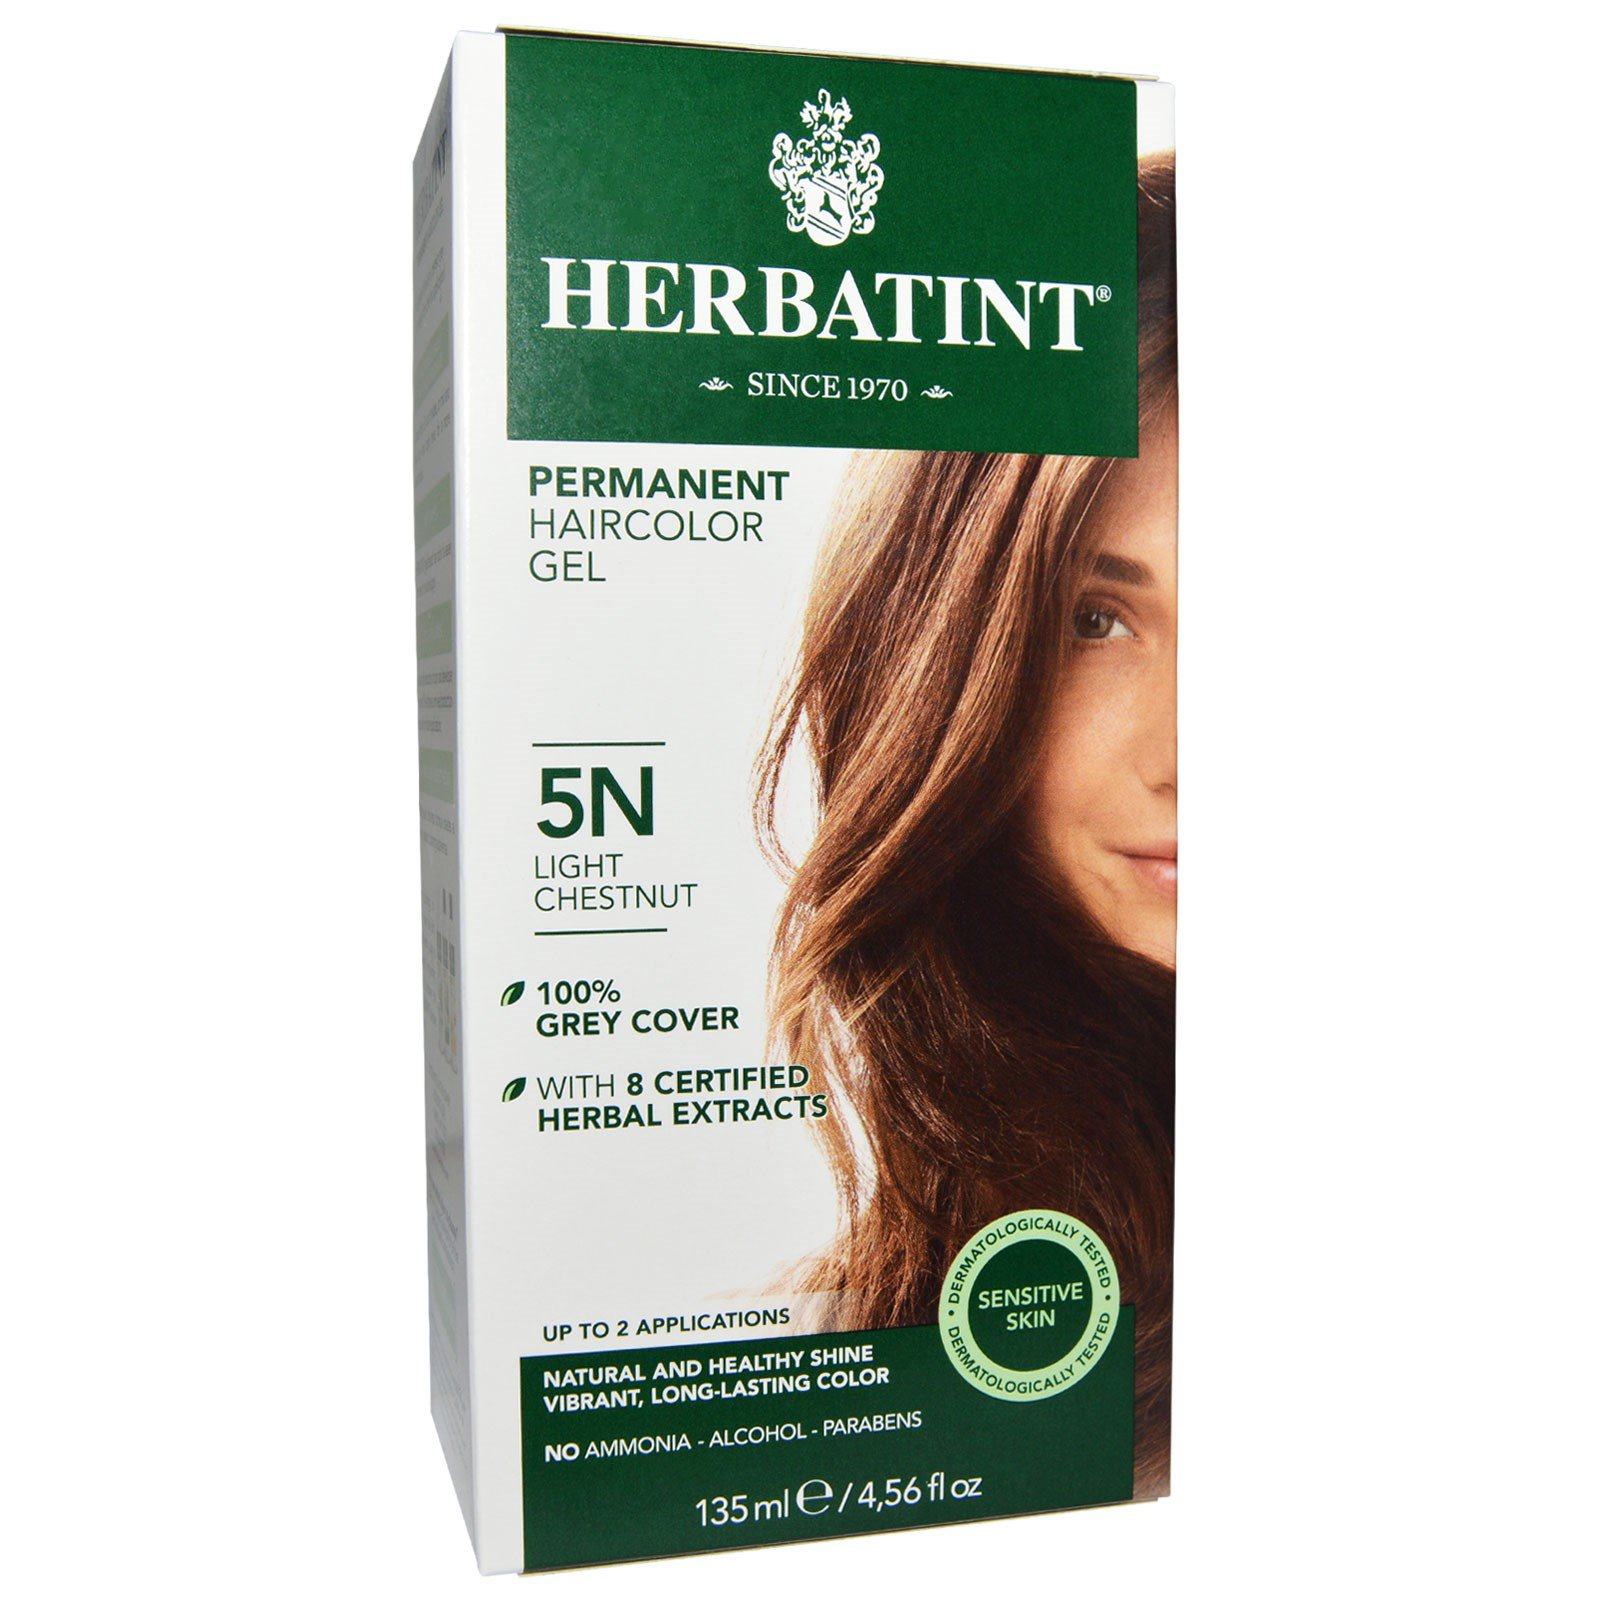 herbatint permanent haircolor gel 5n light chestnut fl oz 135 ml. Black Bedroom Furniture Sets. Home Design Ideas